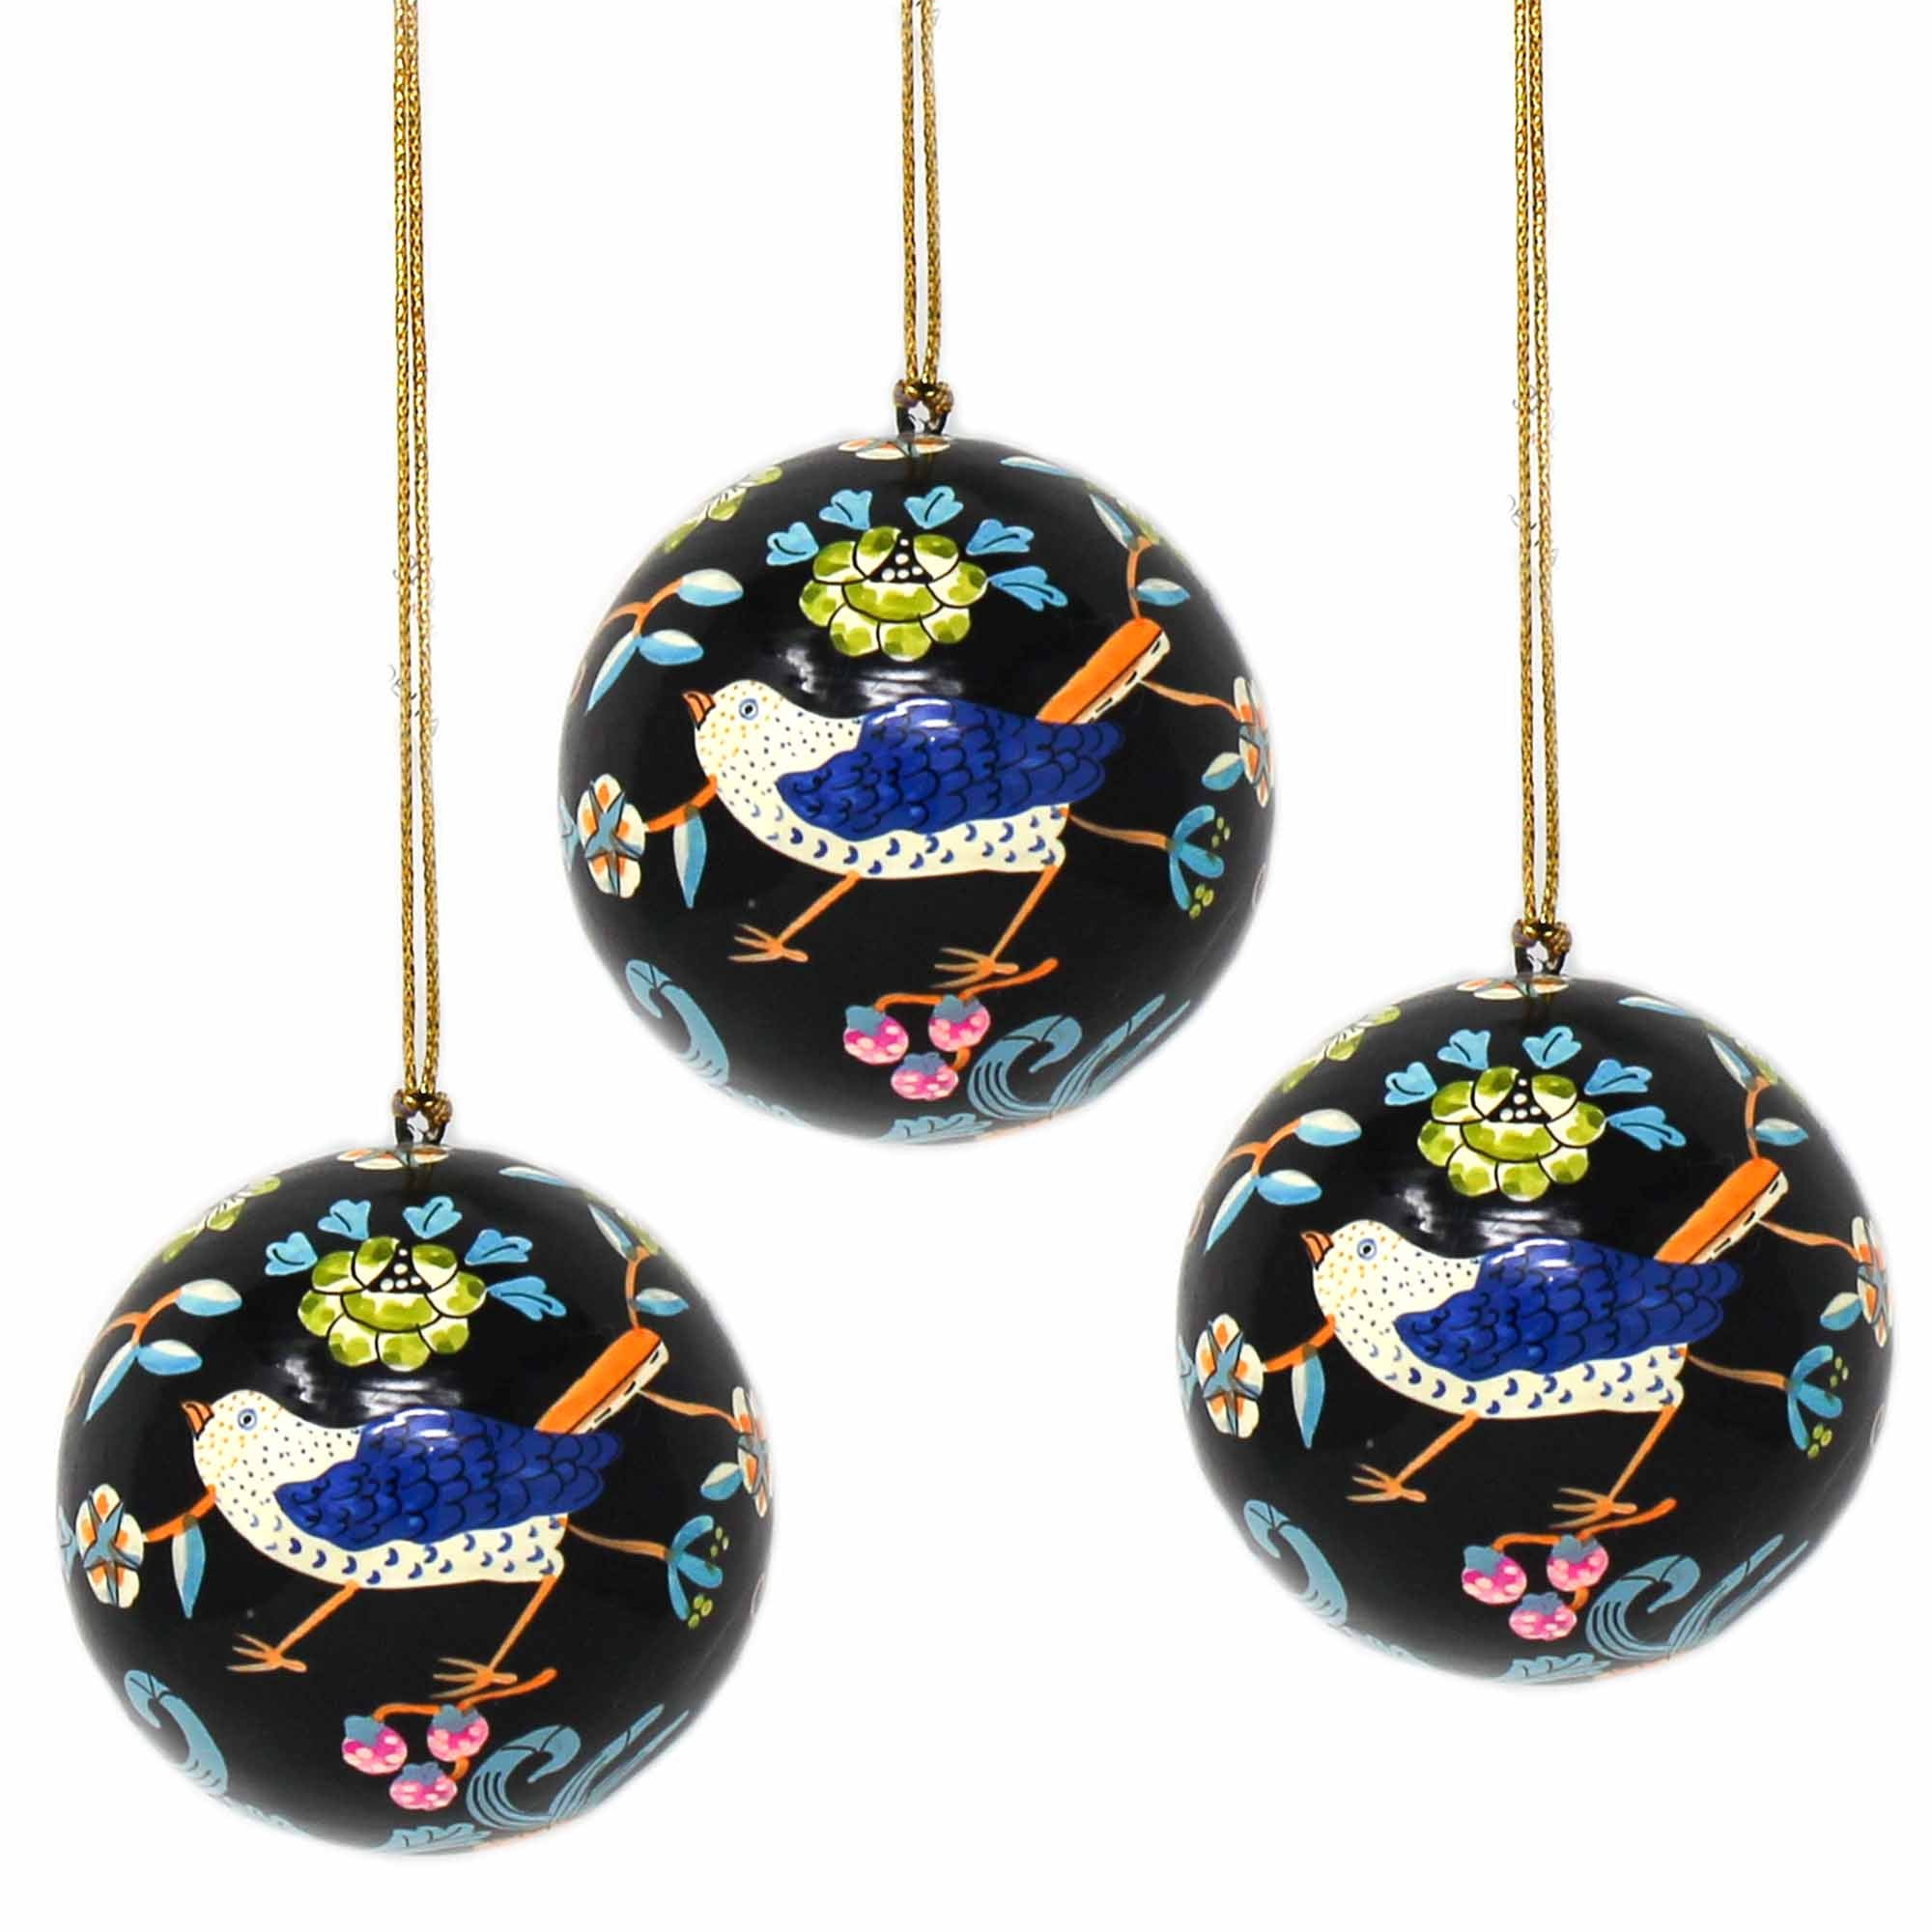 Handpainted Ornament Birds and Flowers, Black - Pack of 3